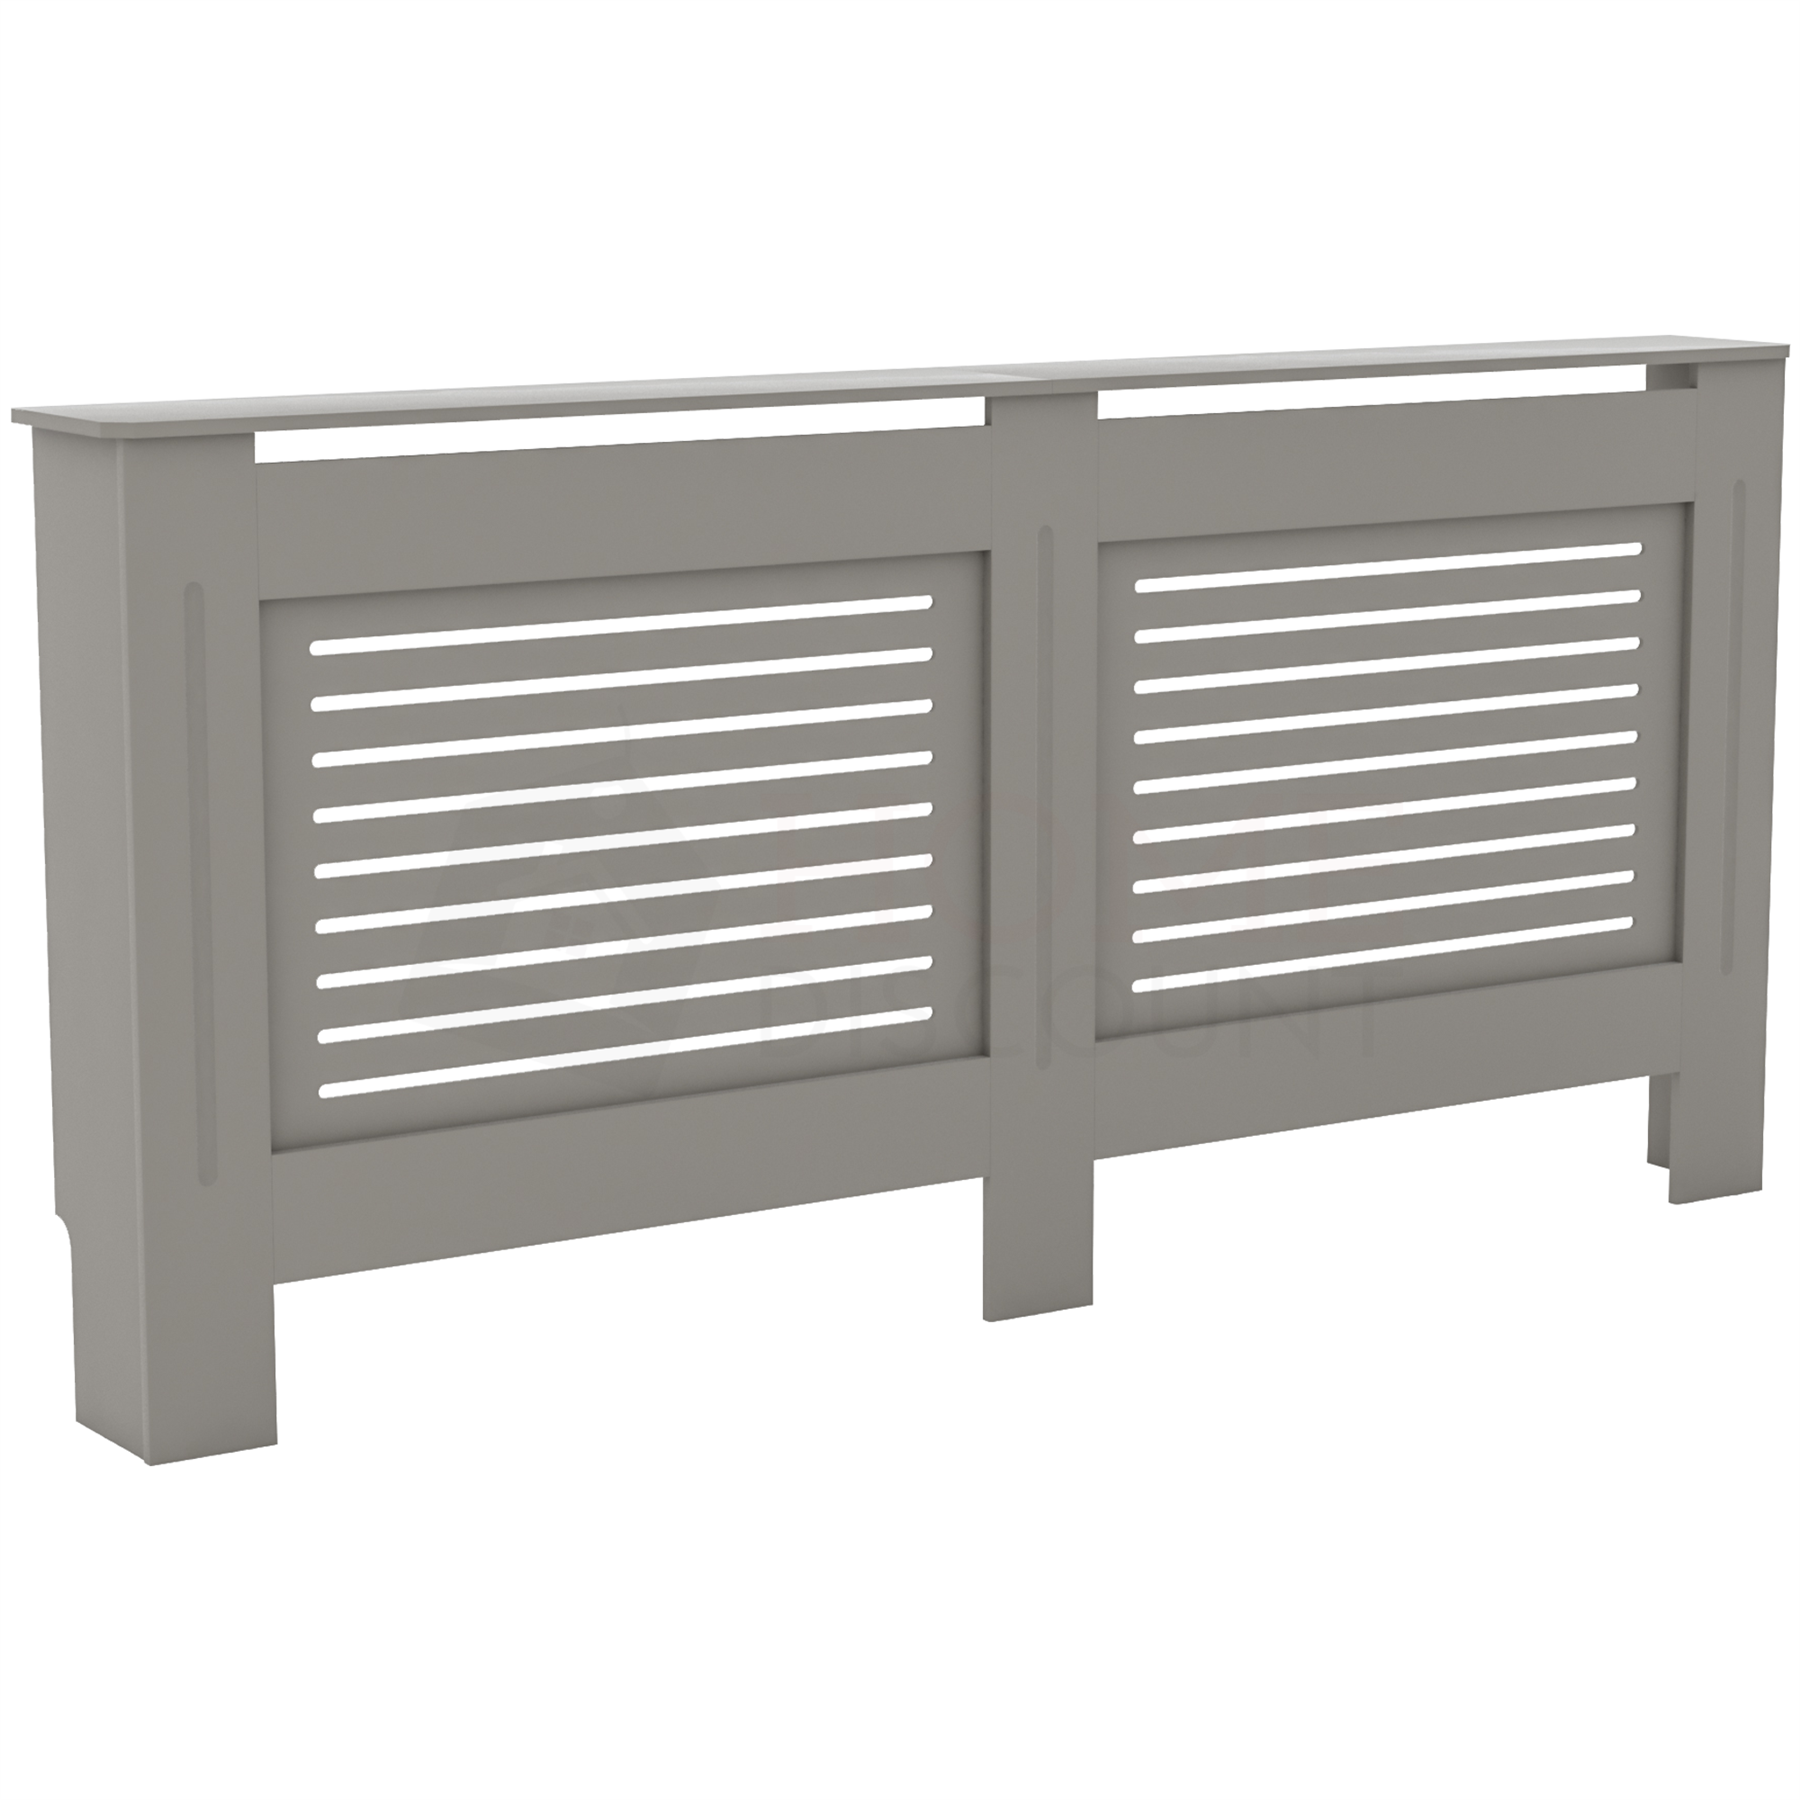 thumbnail 185 - Radiator Cover White Unfinished Modern Traditional Wood Grill Cabinet Furniture